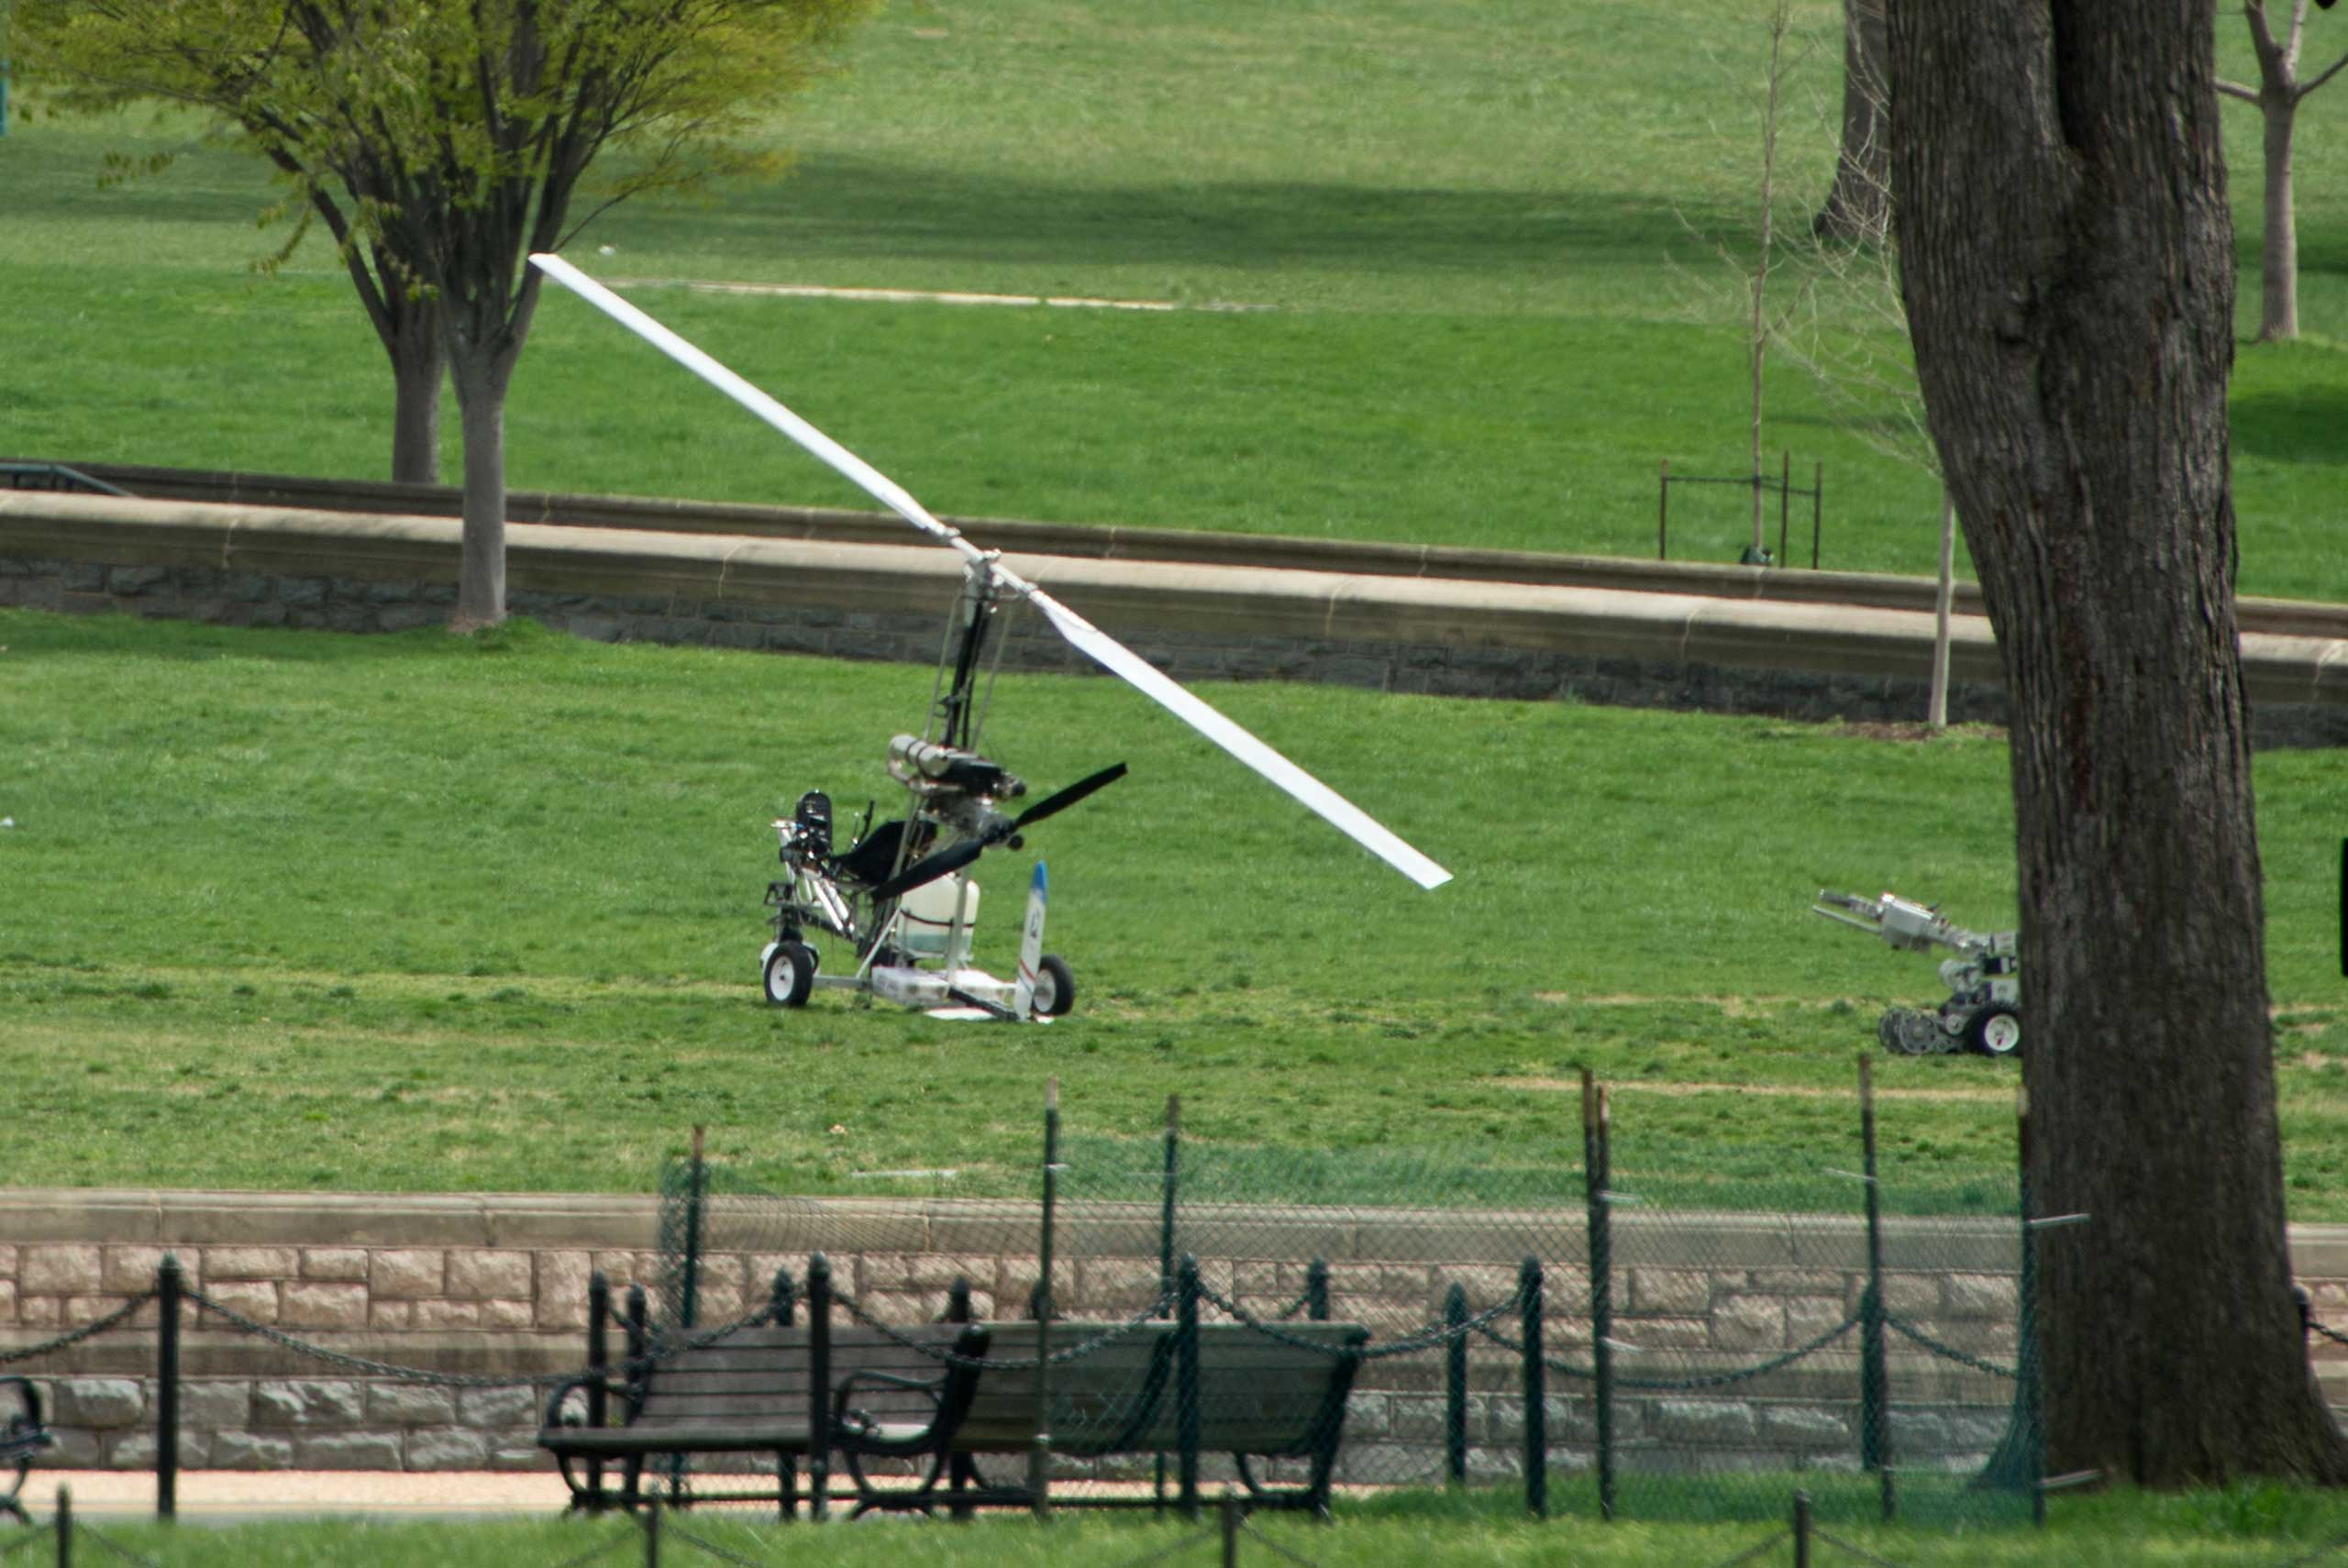 A man was arrested after landing a  gyrocopter on the West Lawn of the U.S. Capitol on April 15, 2015.